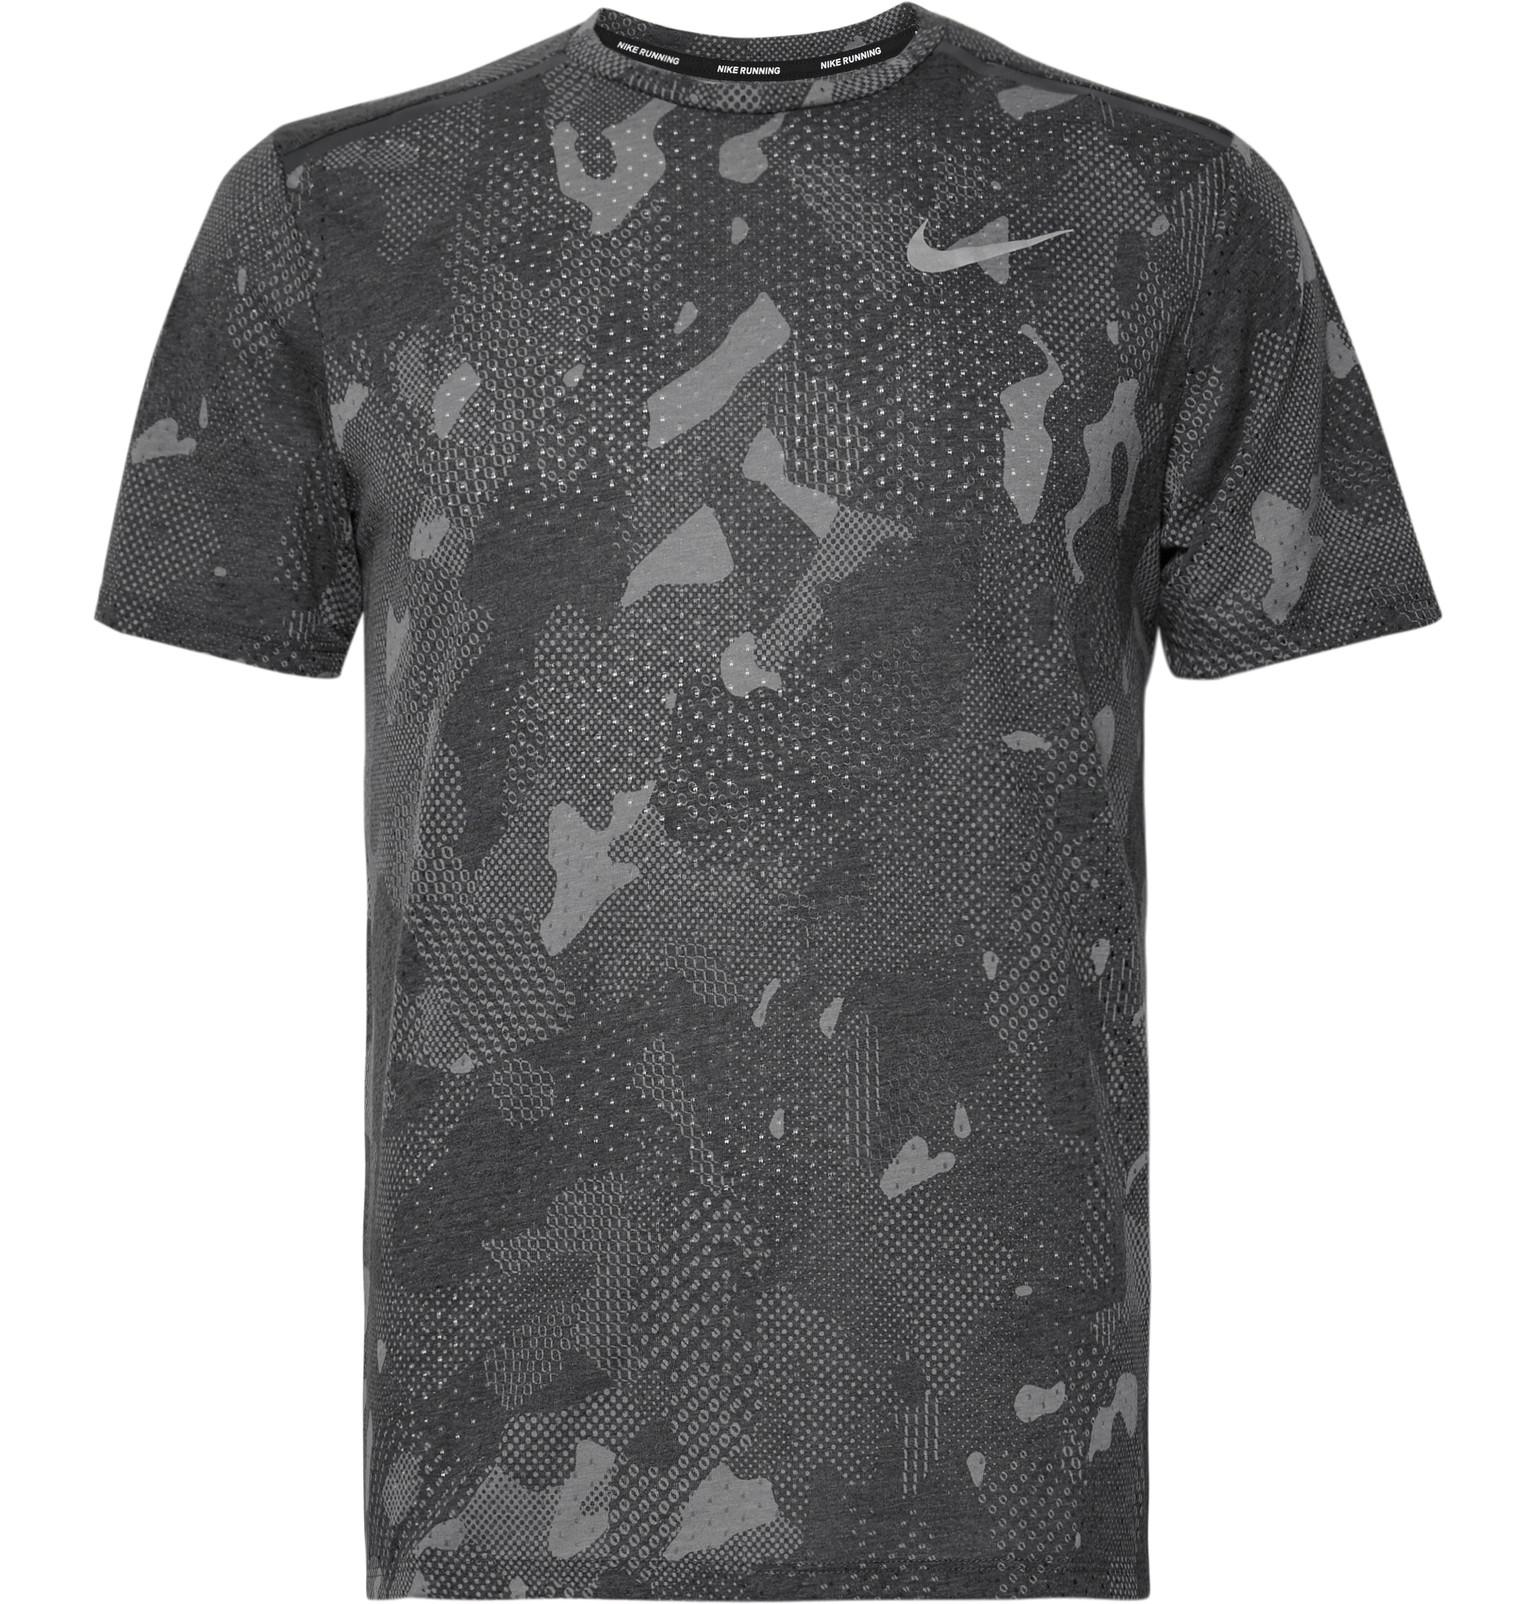 hot sale new york casual shoes Rise 365 Perforated Camouflage-print Dri-fit Mesh T-shirt